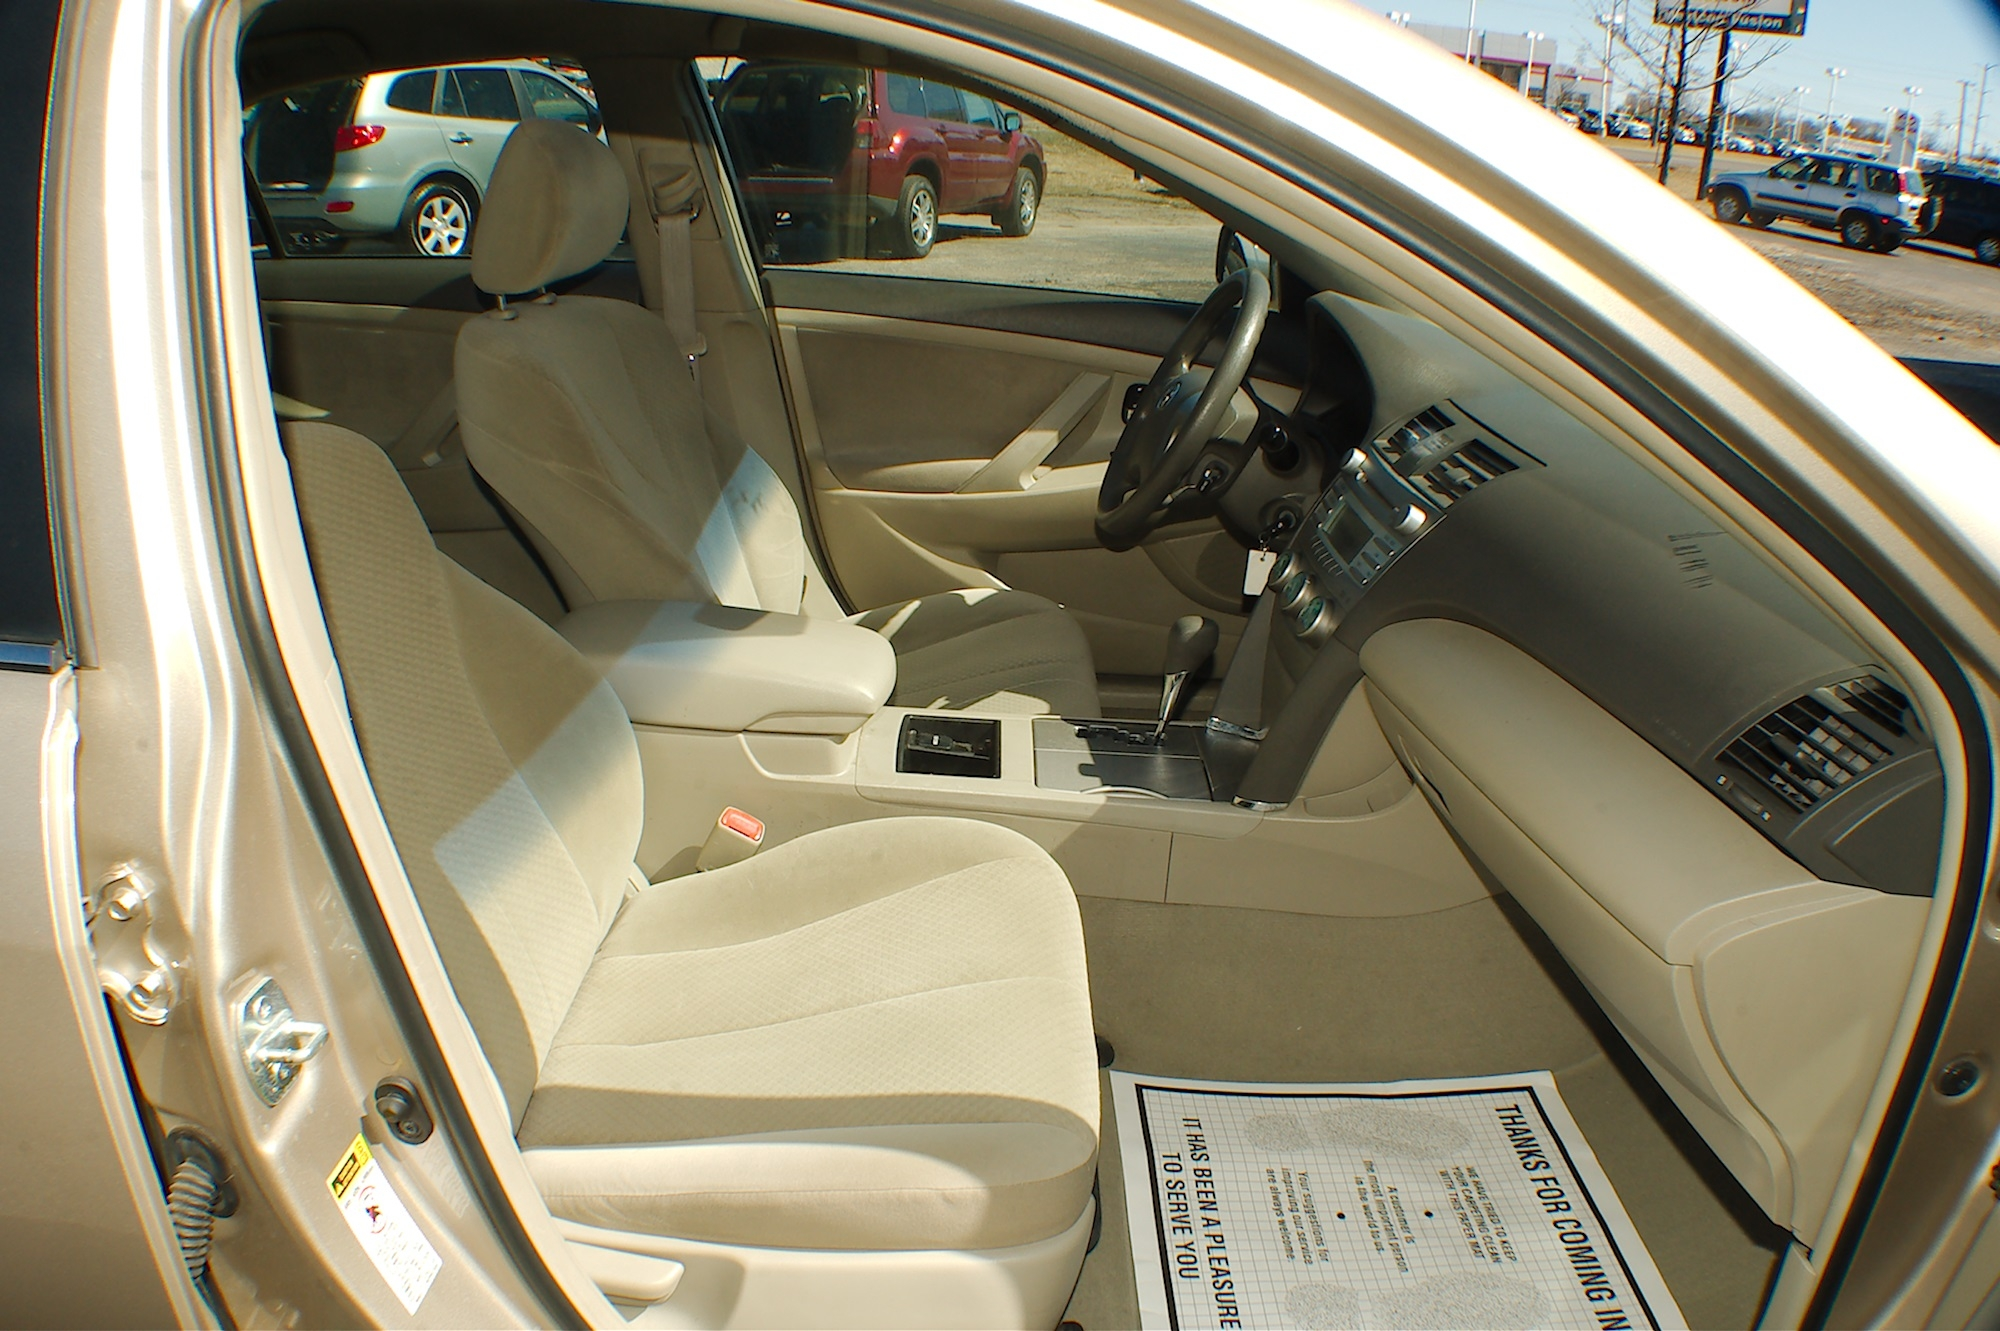 2007 Toyota Camry LE Beige Sedan Used Car Sale Lake Villa Lake Zurich Lakemoor Milwaukee